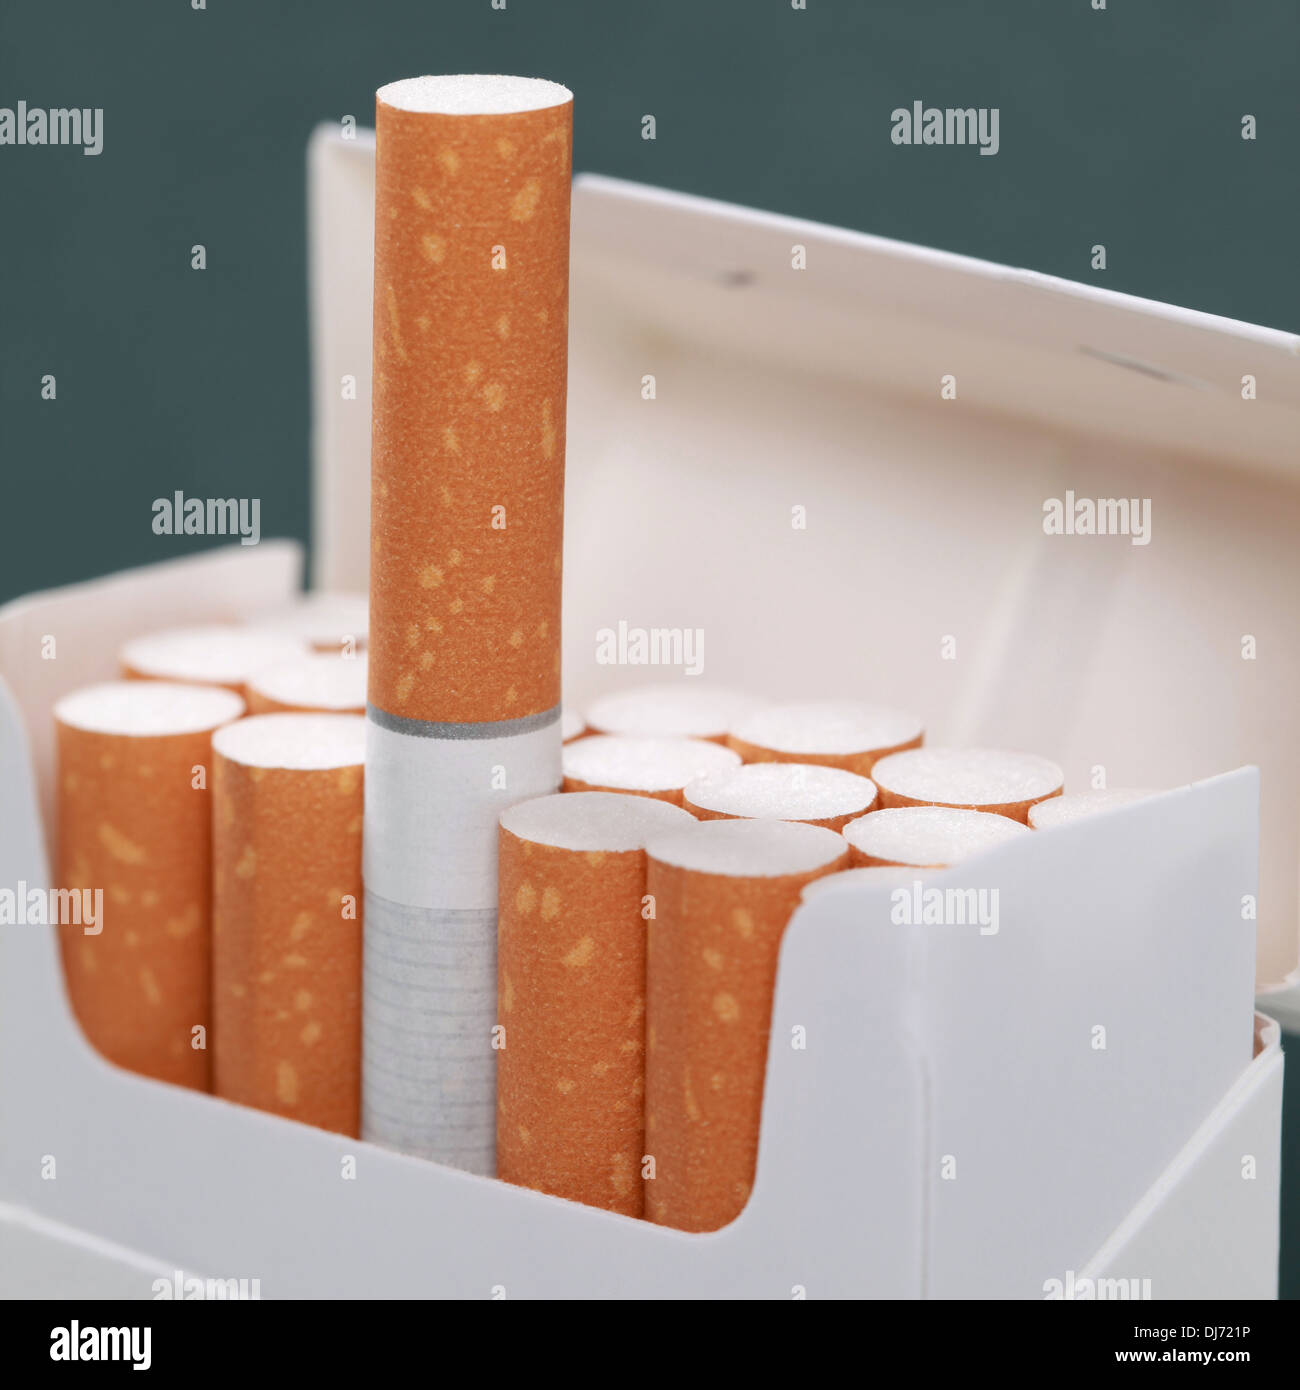 Cigarettes in a pack, topic smoking and addiction - Stock Image